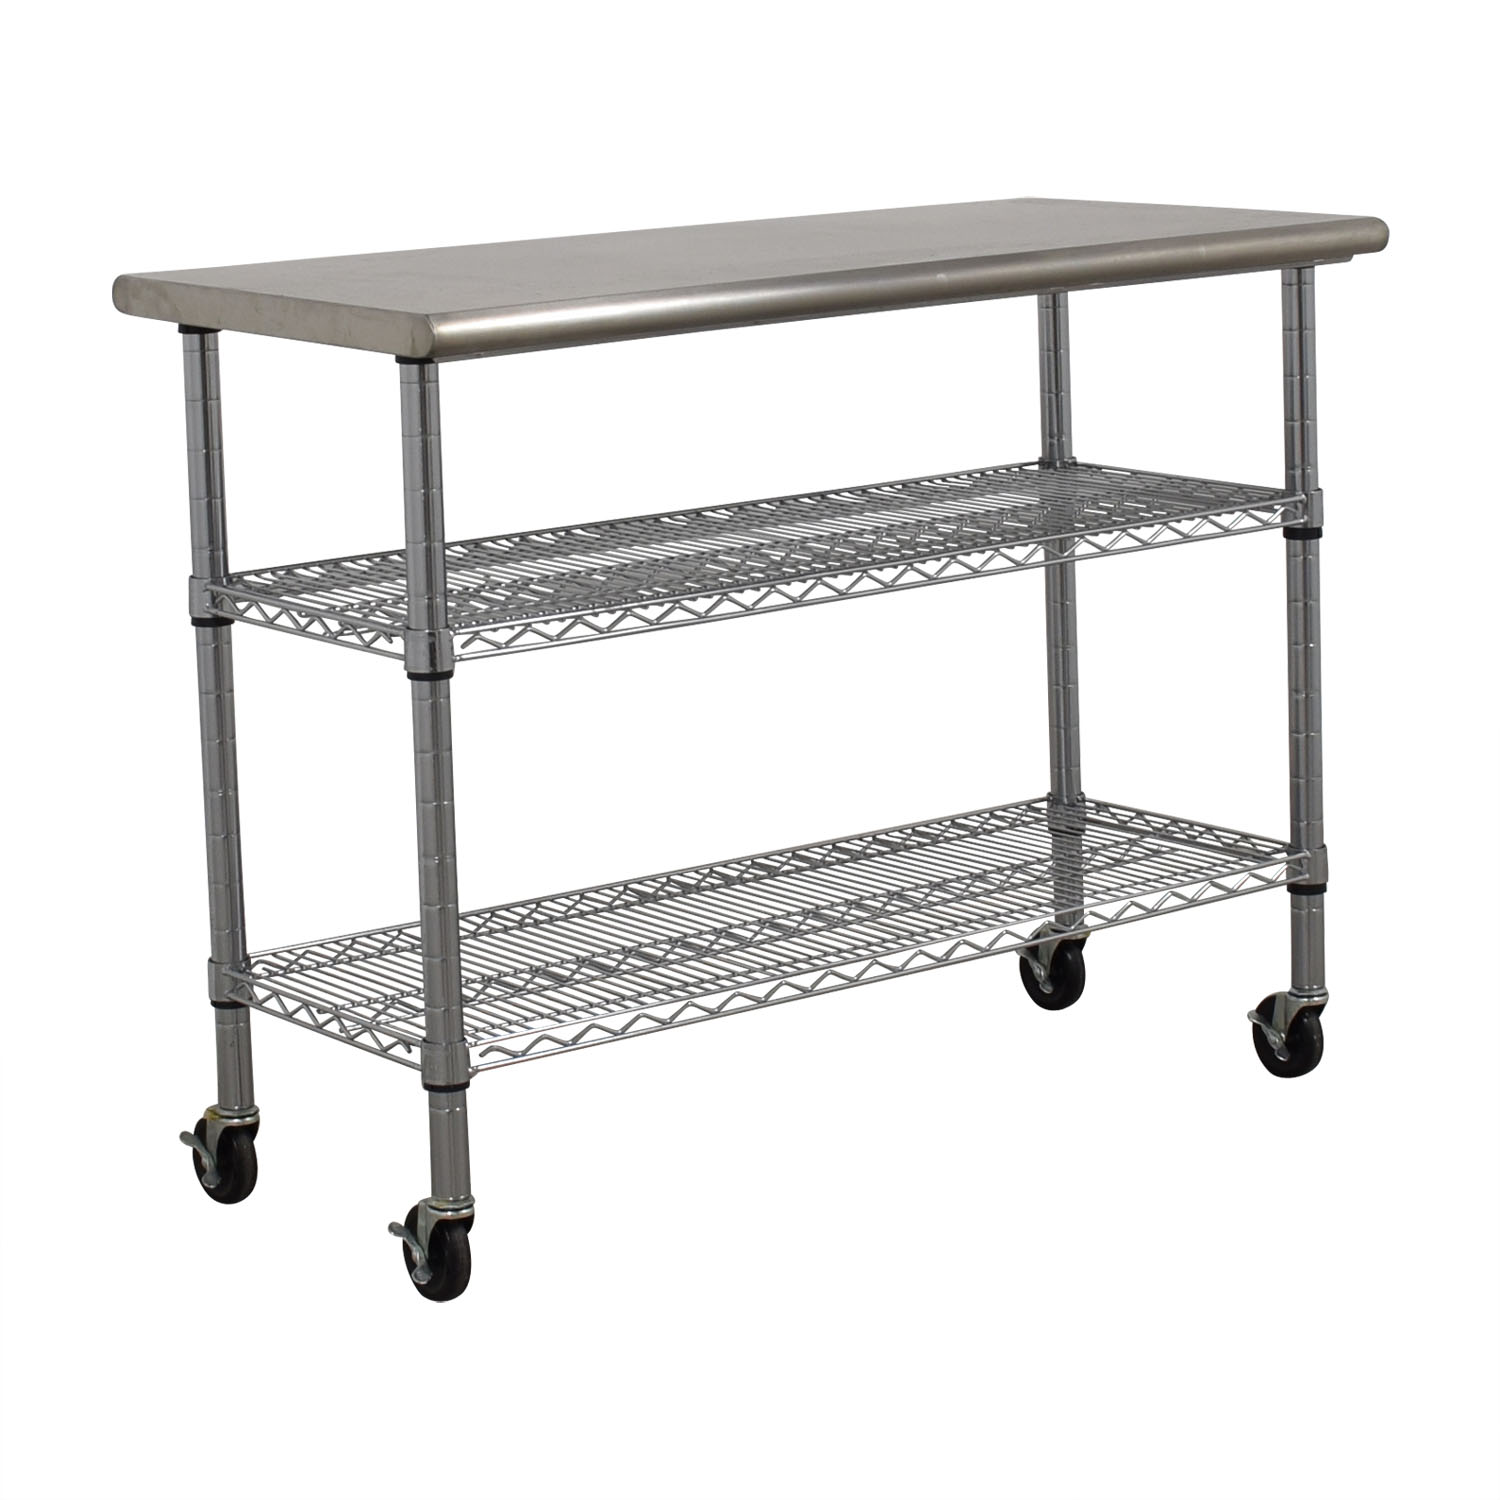 Home Depot Home Depot Stainless Steel Utility Cart on Wheels nyc